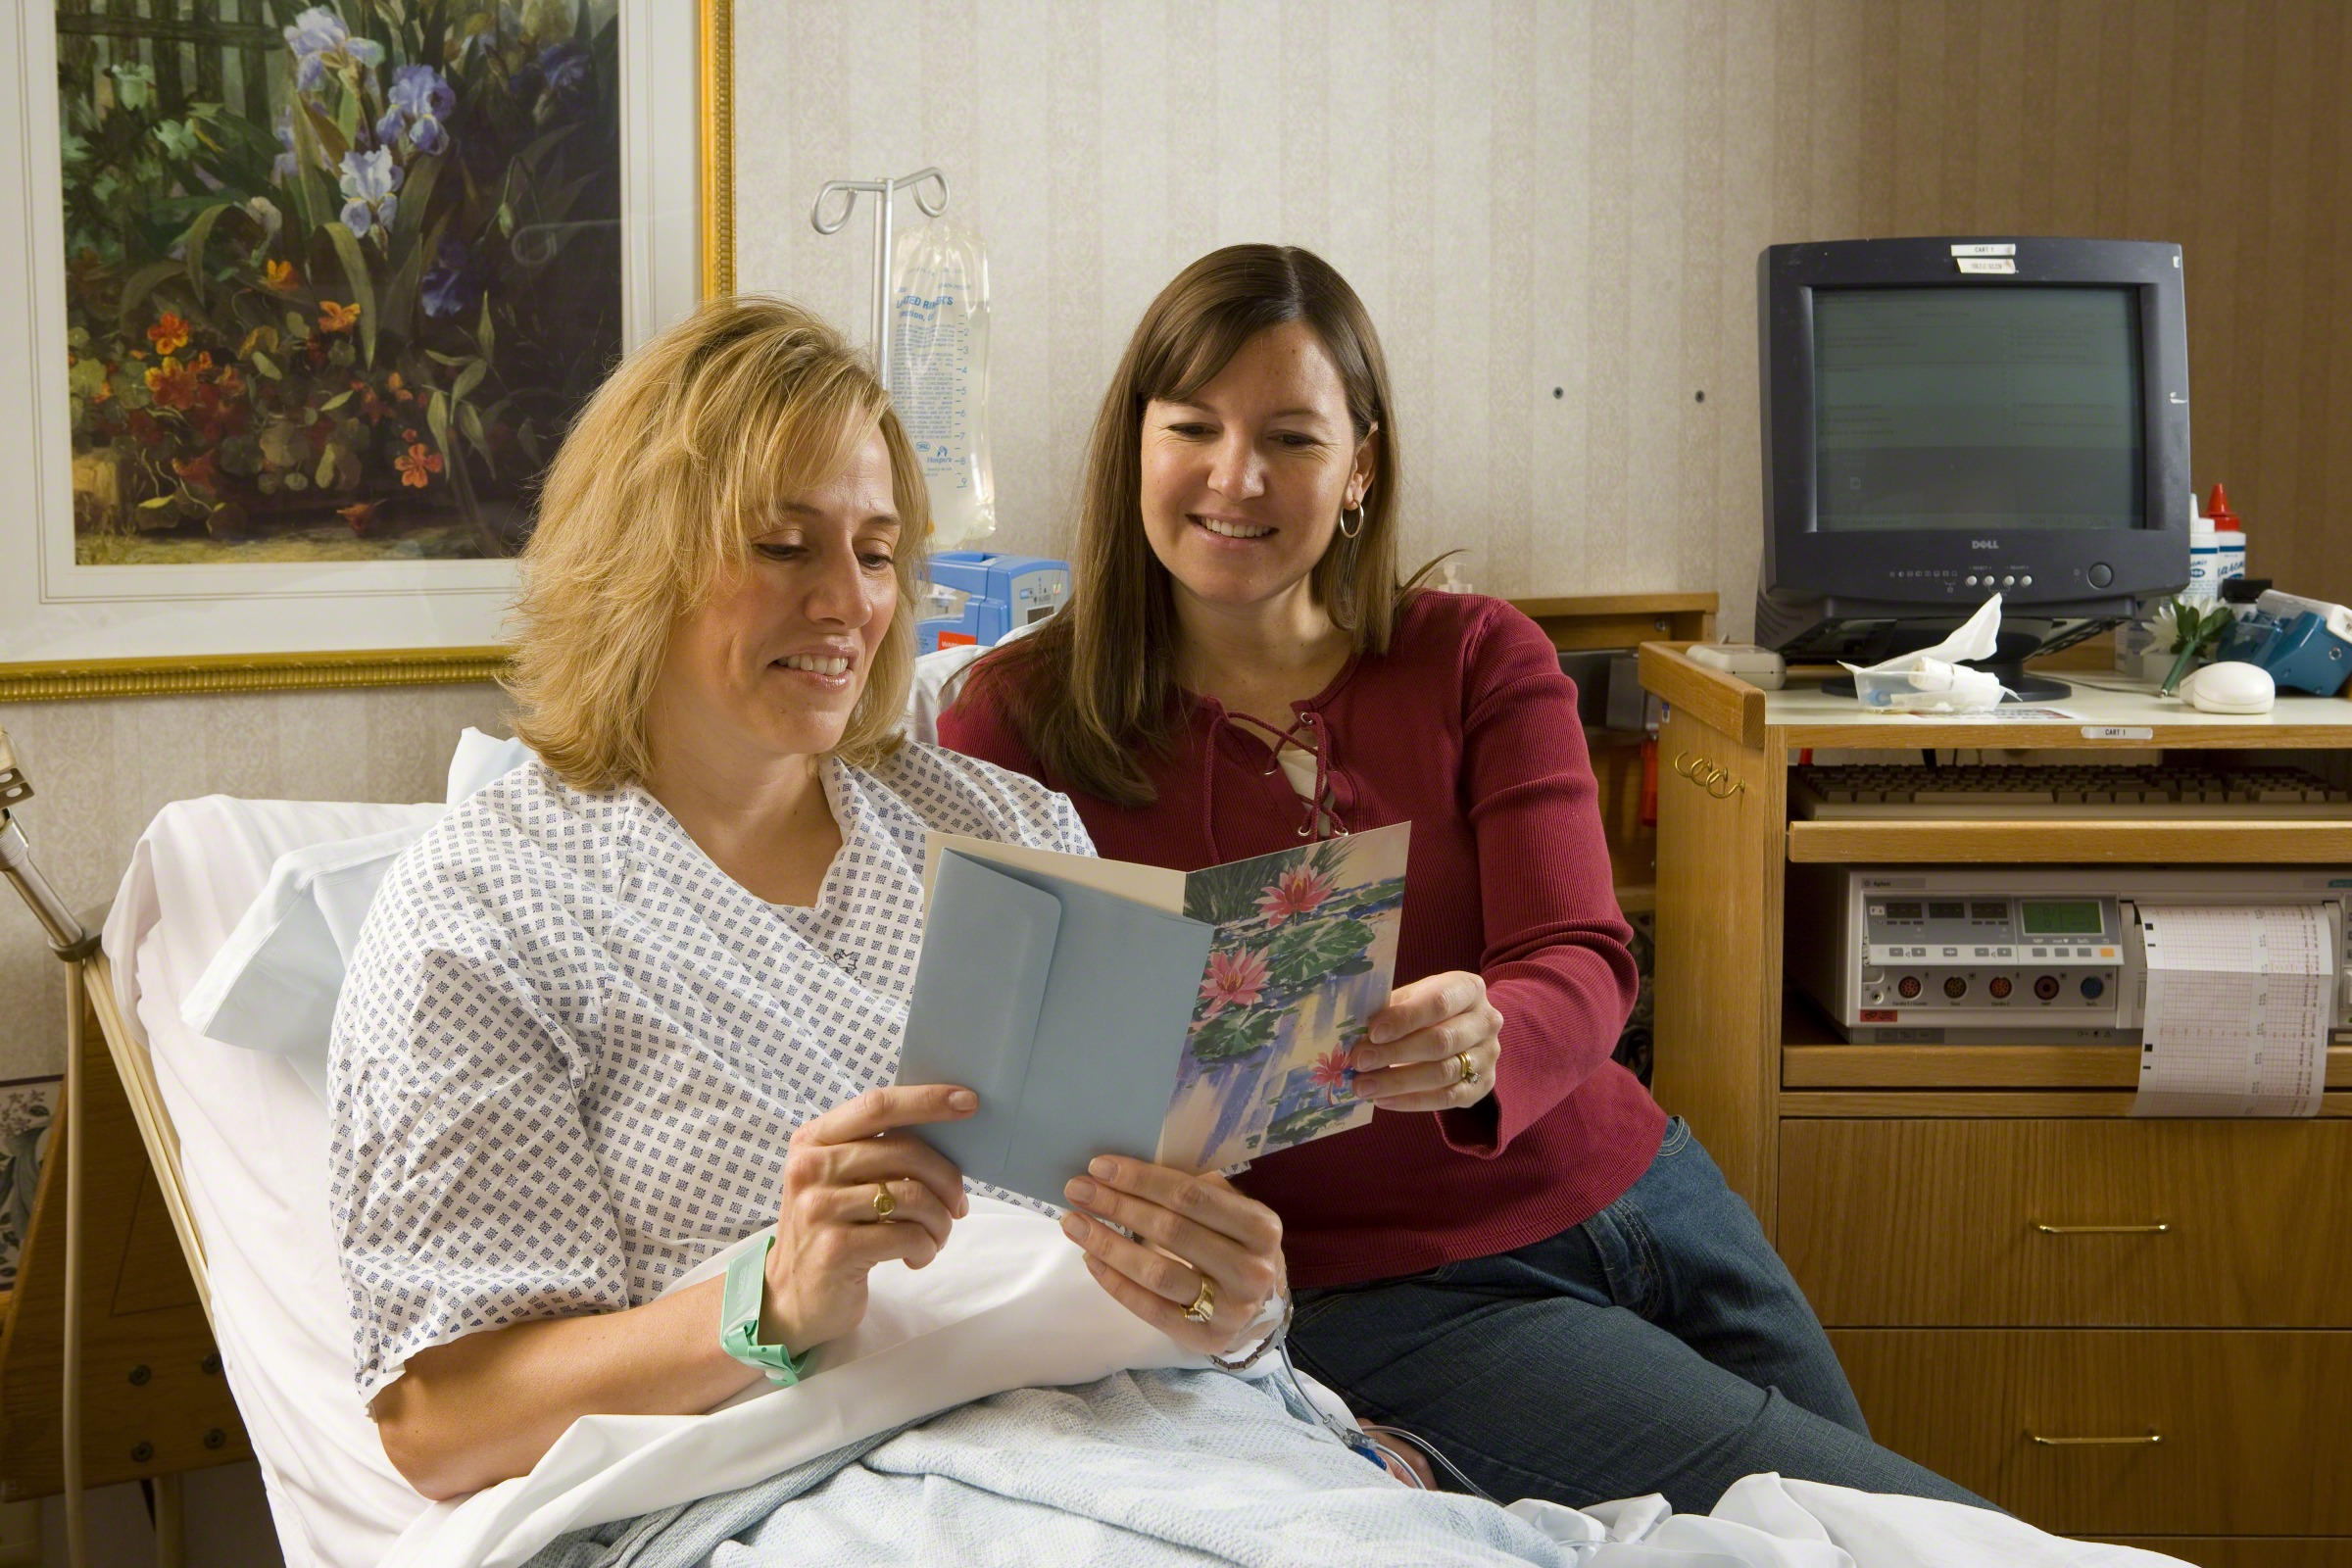 visit a sick person in a hospital What to consider when visiting a friend or relative in hospital, including hand  hygiene and presents.